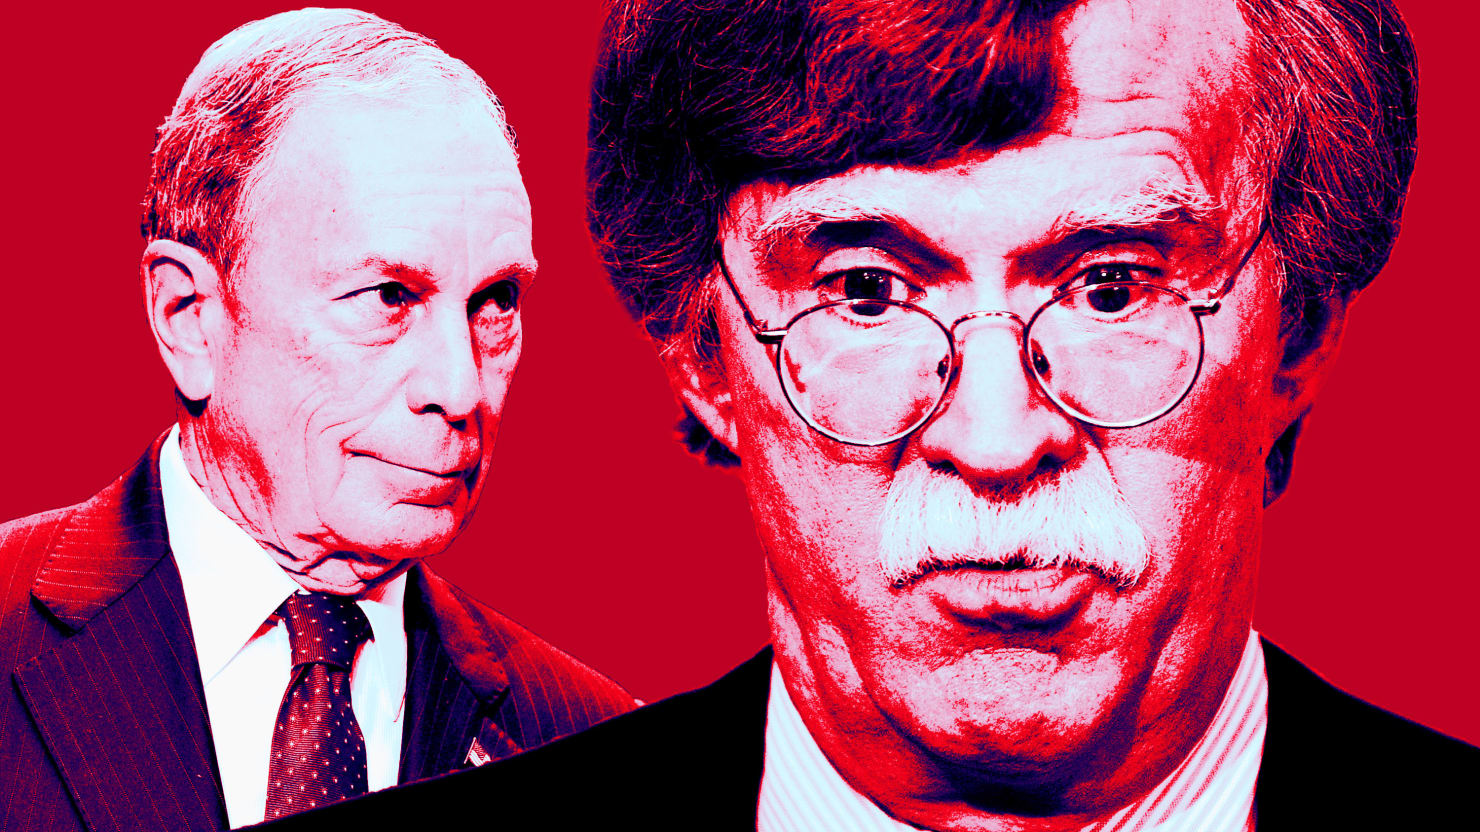 In 2006, Bloomberg Said John Bolton Did 'a Great Job' at United Nations